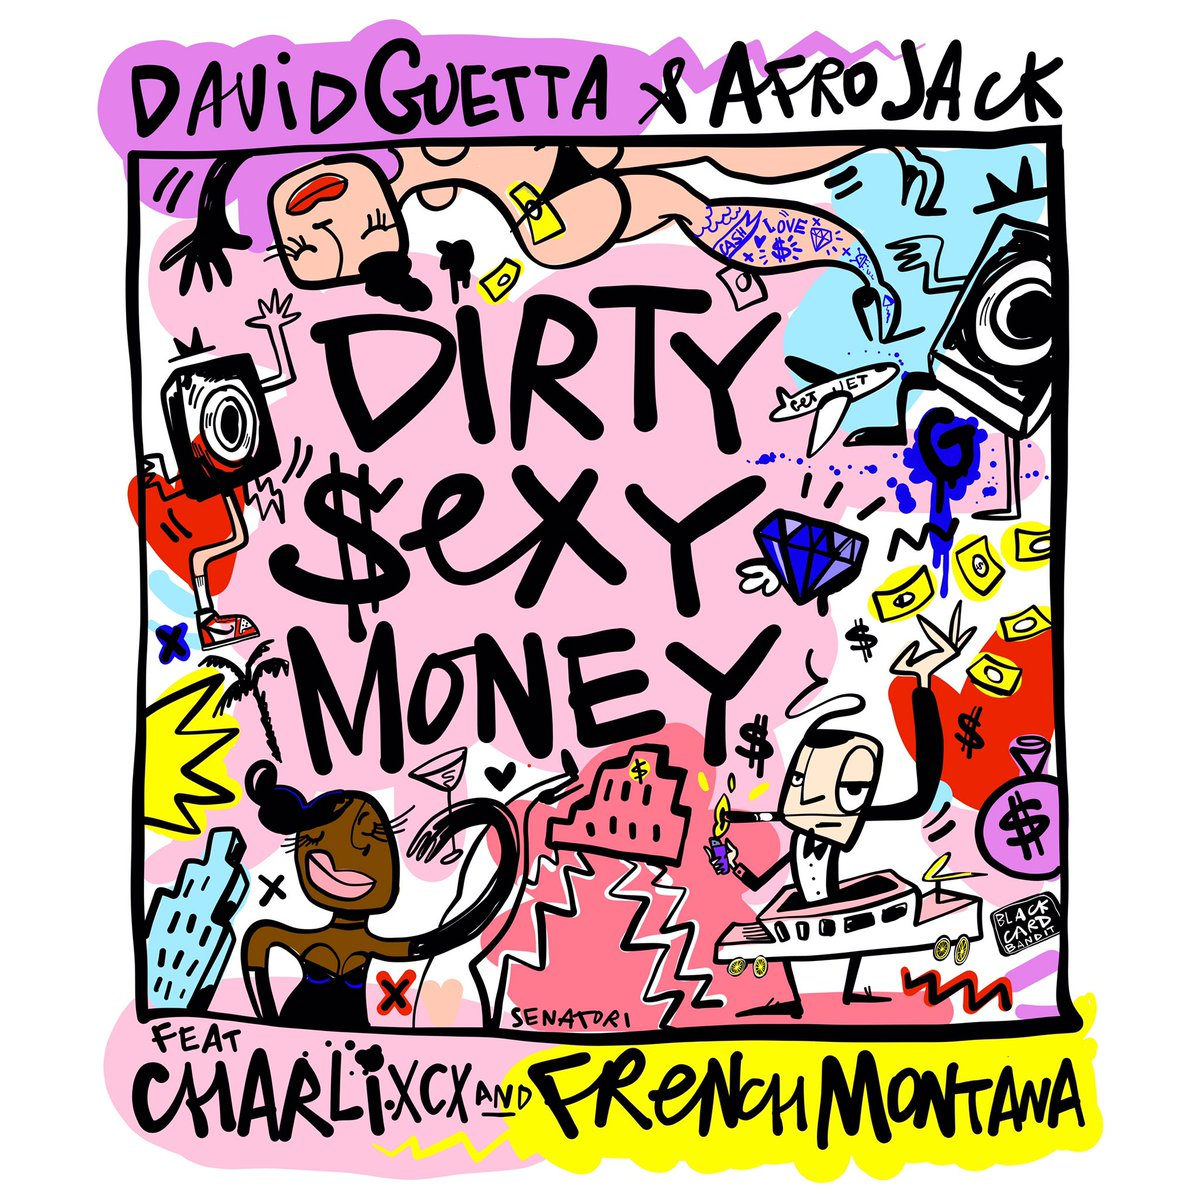 David Guetta & Afrojack - Dirty Sexy Money feat. Charli XCX & French Montana